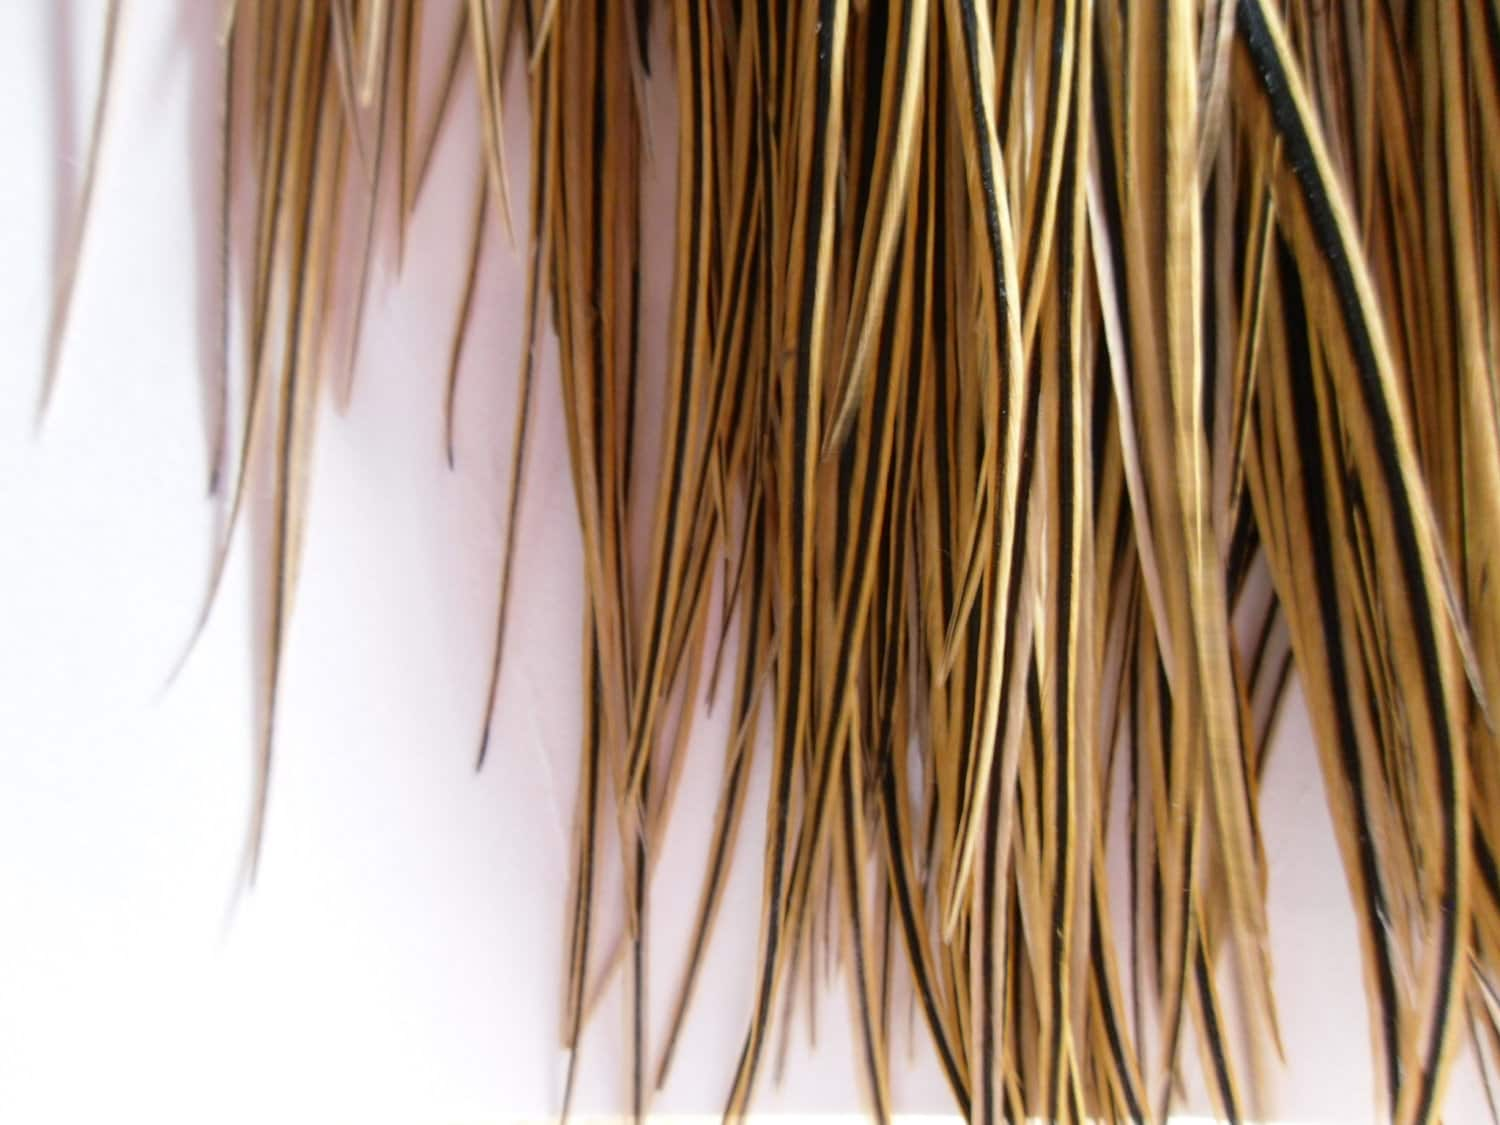 Golden Feather Extensions Hair Supplies Long Feathers For Hair